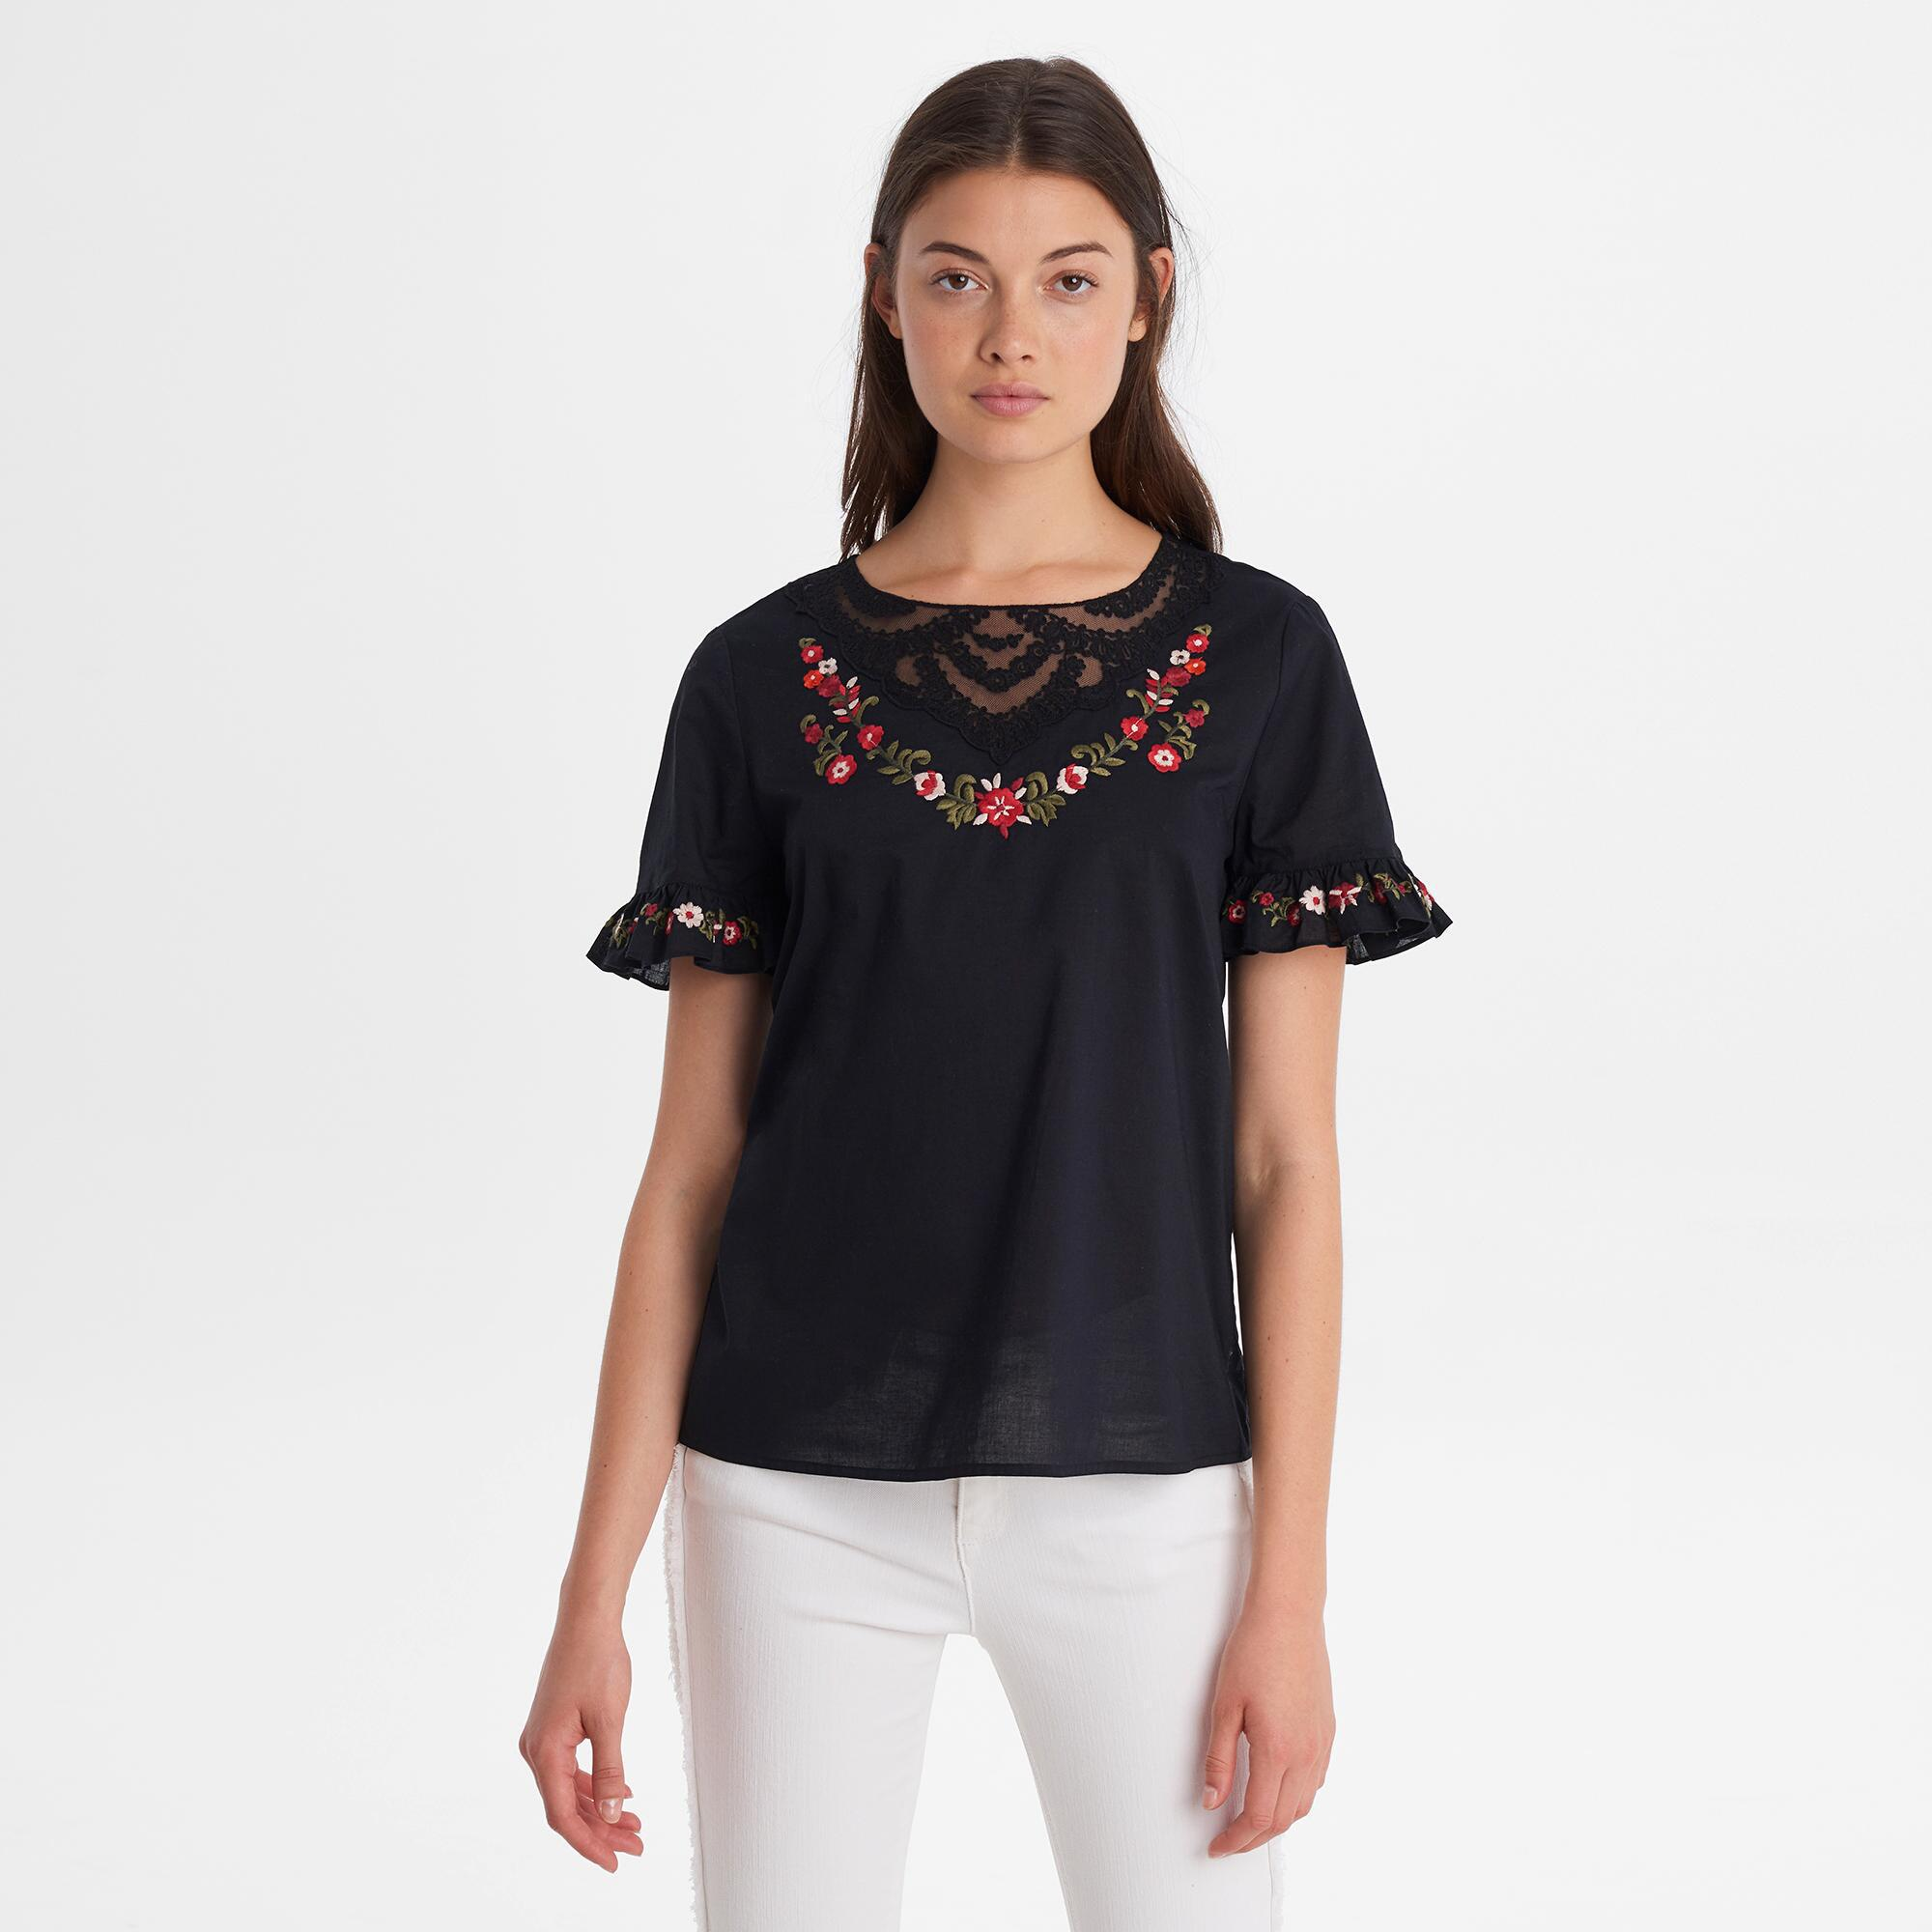 be94727d40b333 Lyst - Karl Lagerfeld Embroidered Ruffle Sleeve Blouse in Black